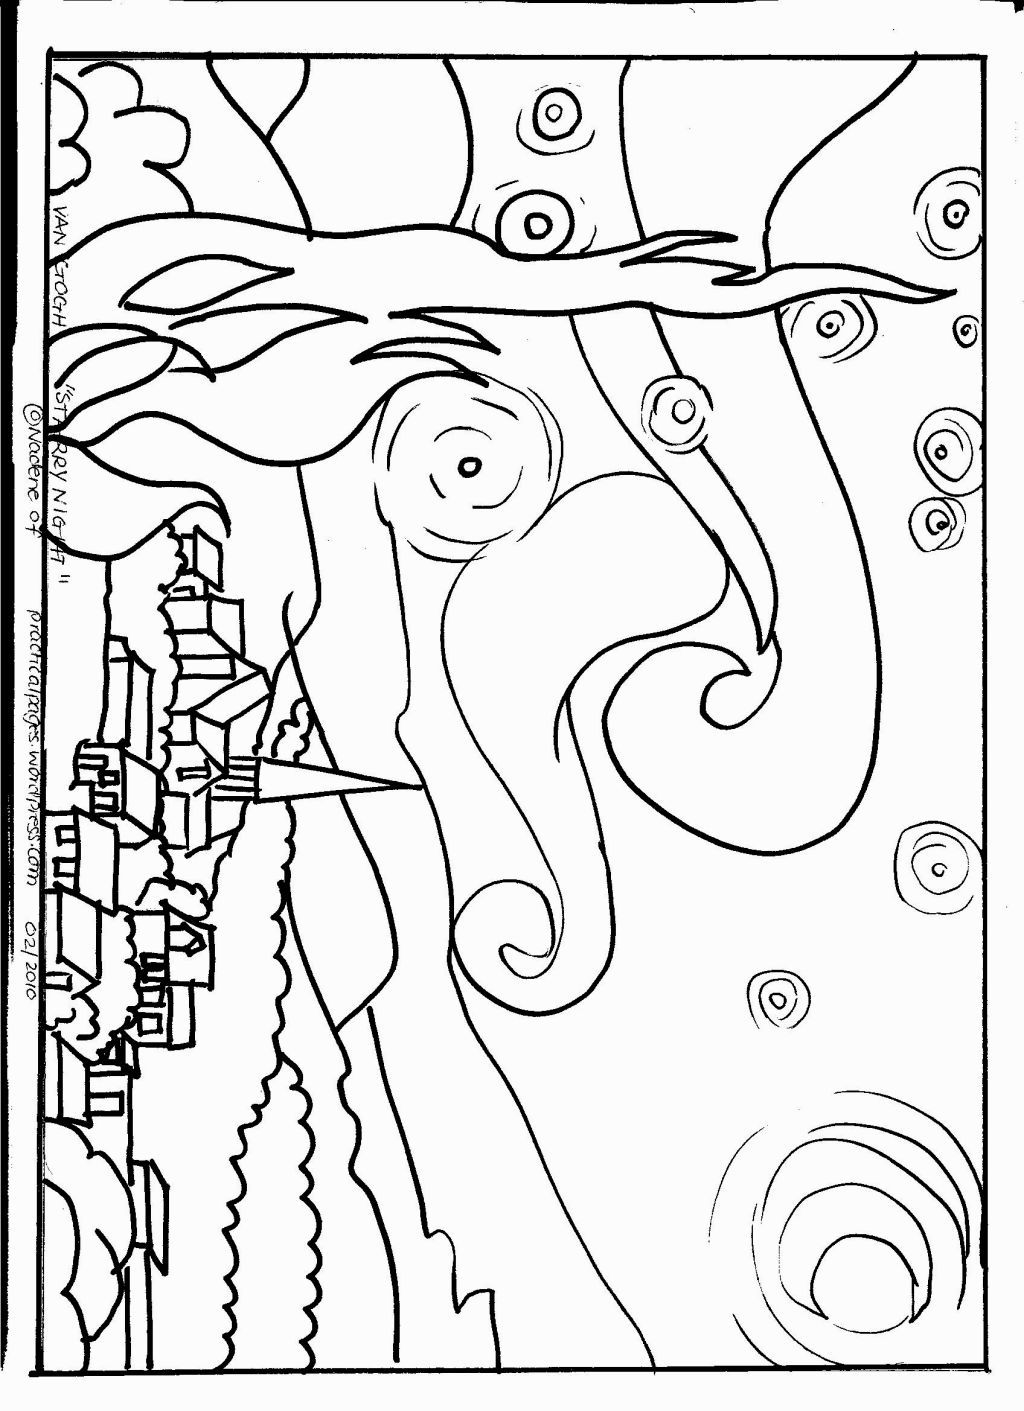 Famous paintings coloring pages starry night art art